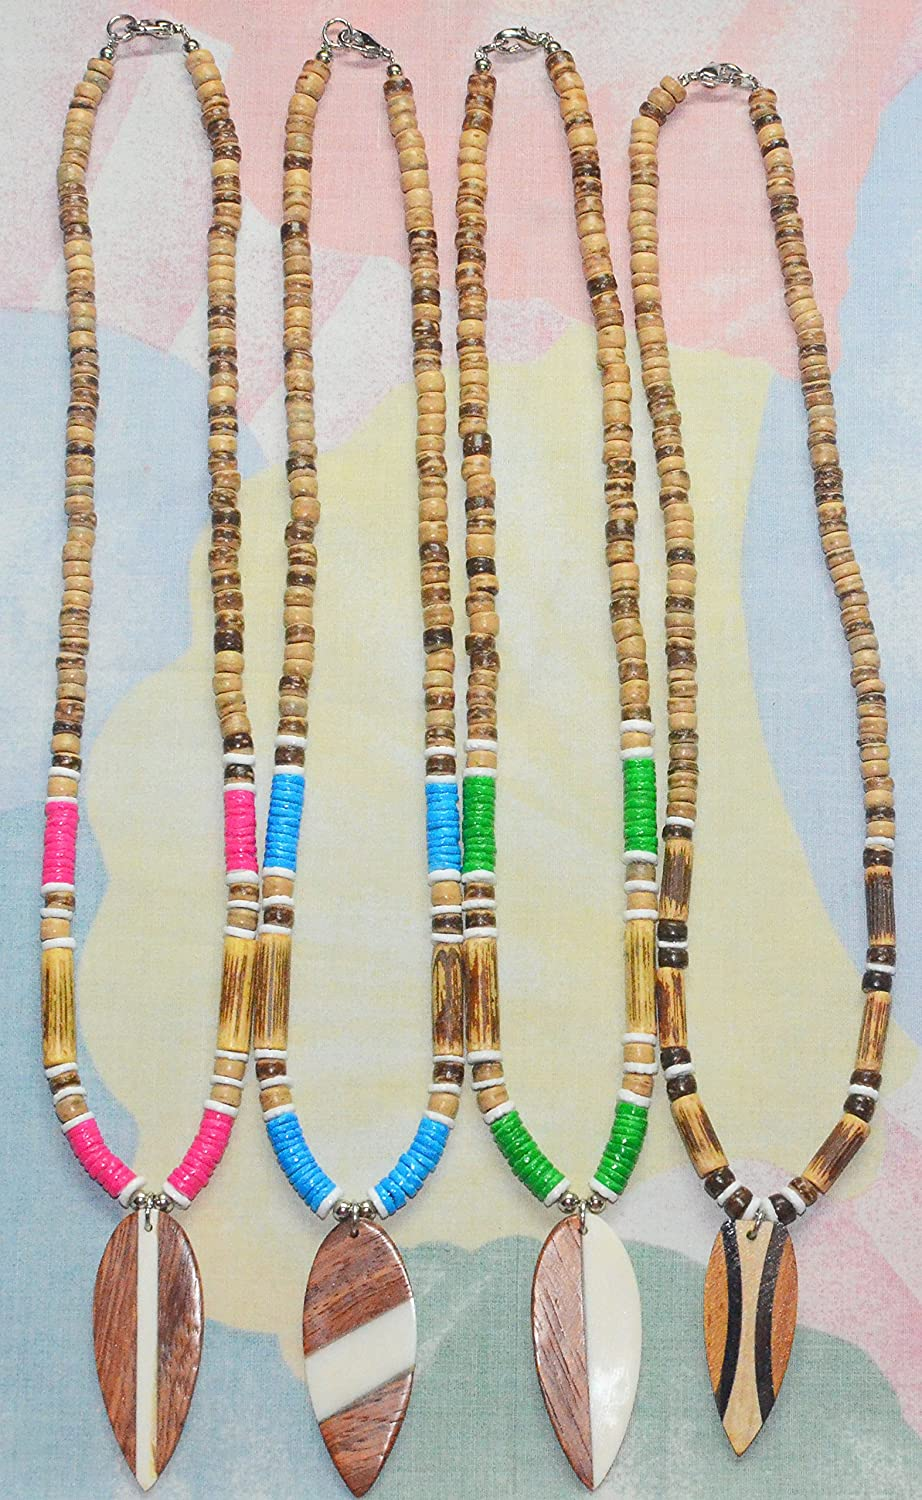 Native Treasure - 12pcs Party Pack 5mmTiger Coco Wood Bead, Color Heishe Puka Shell Surfboard Pendant Necklaces, Lobster Clasp